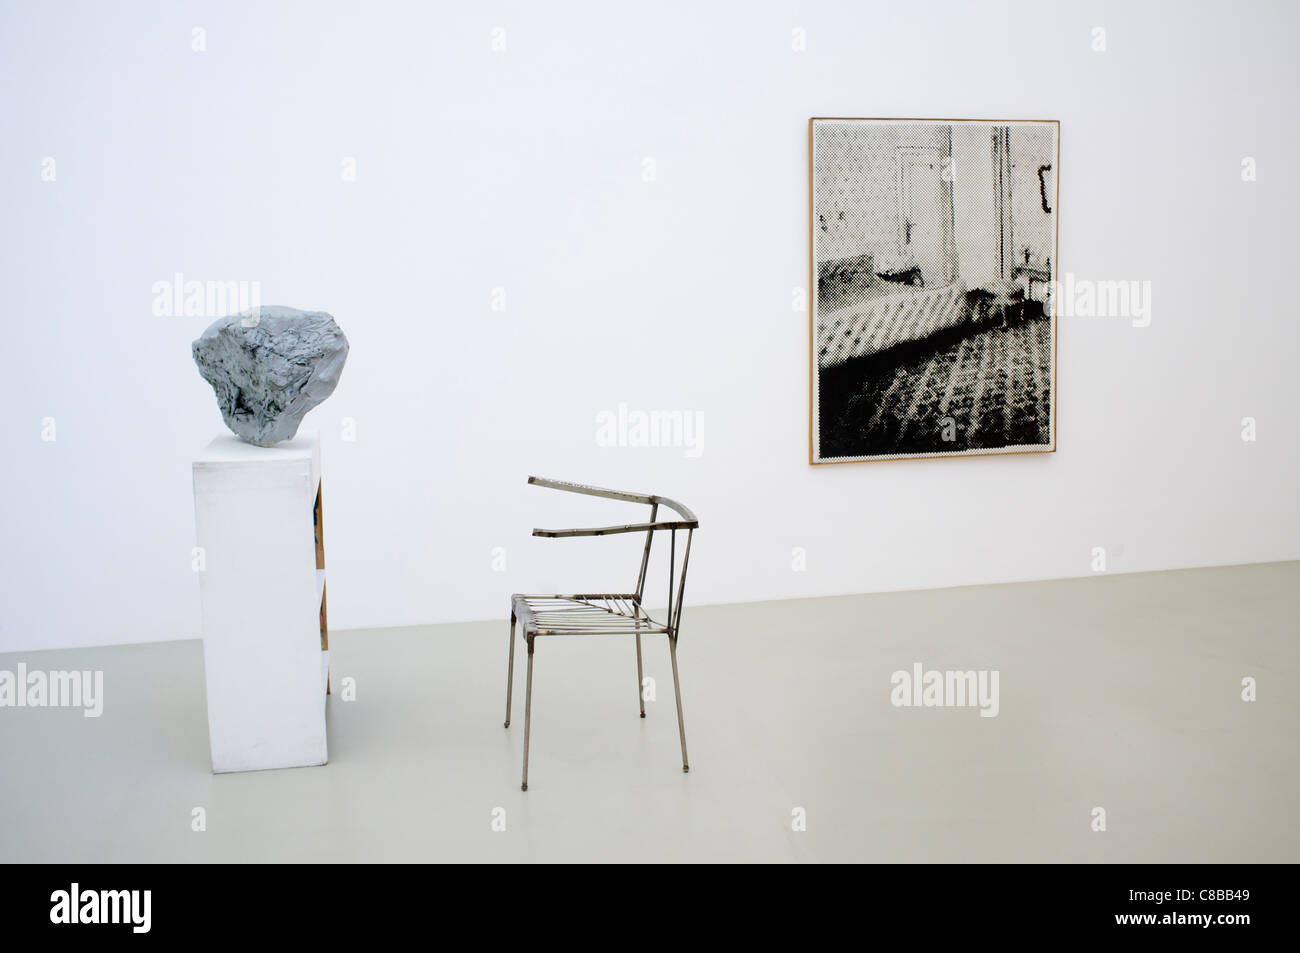 Sculpture Lobby Piece for a Museum by Franz West and Photo Bedroom by Sigmar Polke at Abteiberg in Mönchengladbach - Stock Image